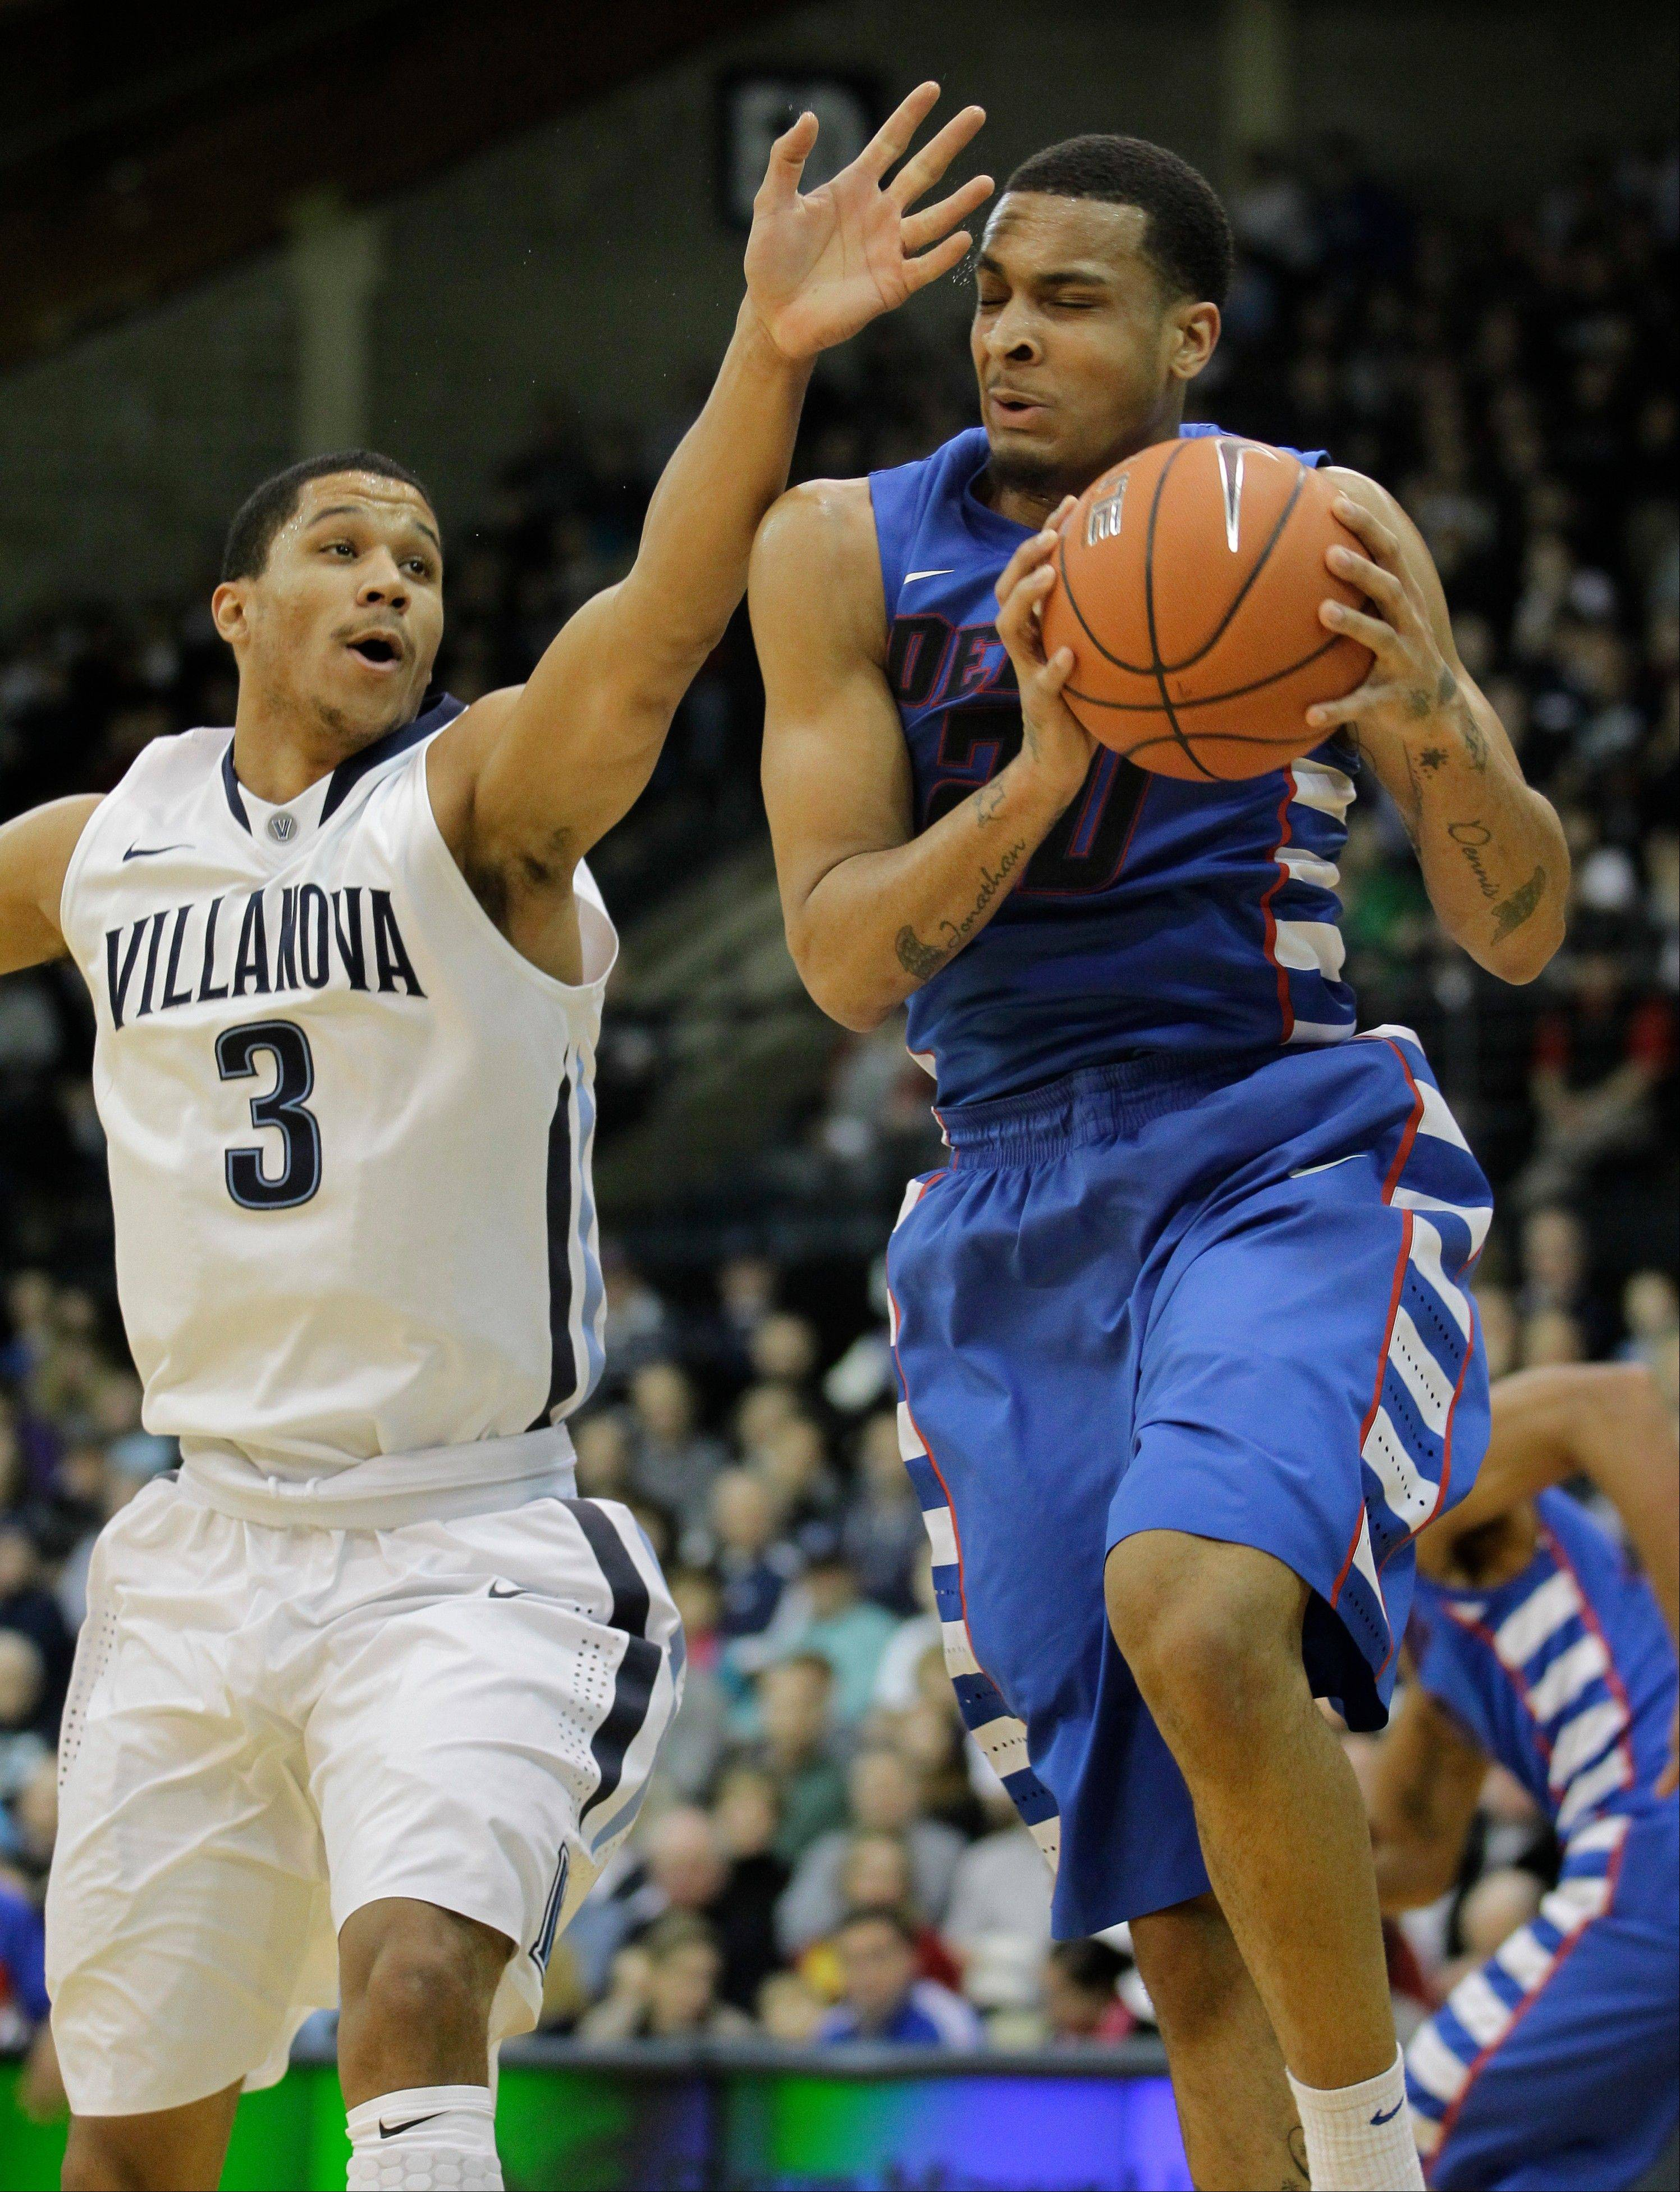 DePaul�s Brandon Young (2) grabs a rebound away from Villanova�s Josh Hart (3) in the first half of an NCAA college basketball game on Saturday in Villanova, Pa.